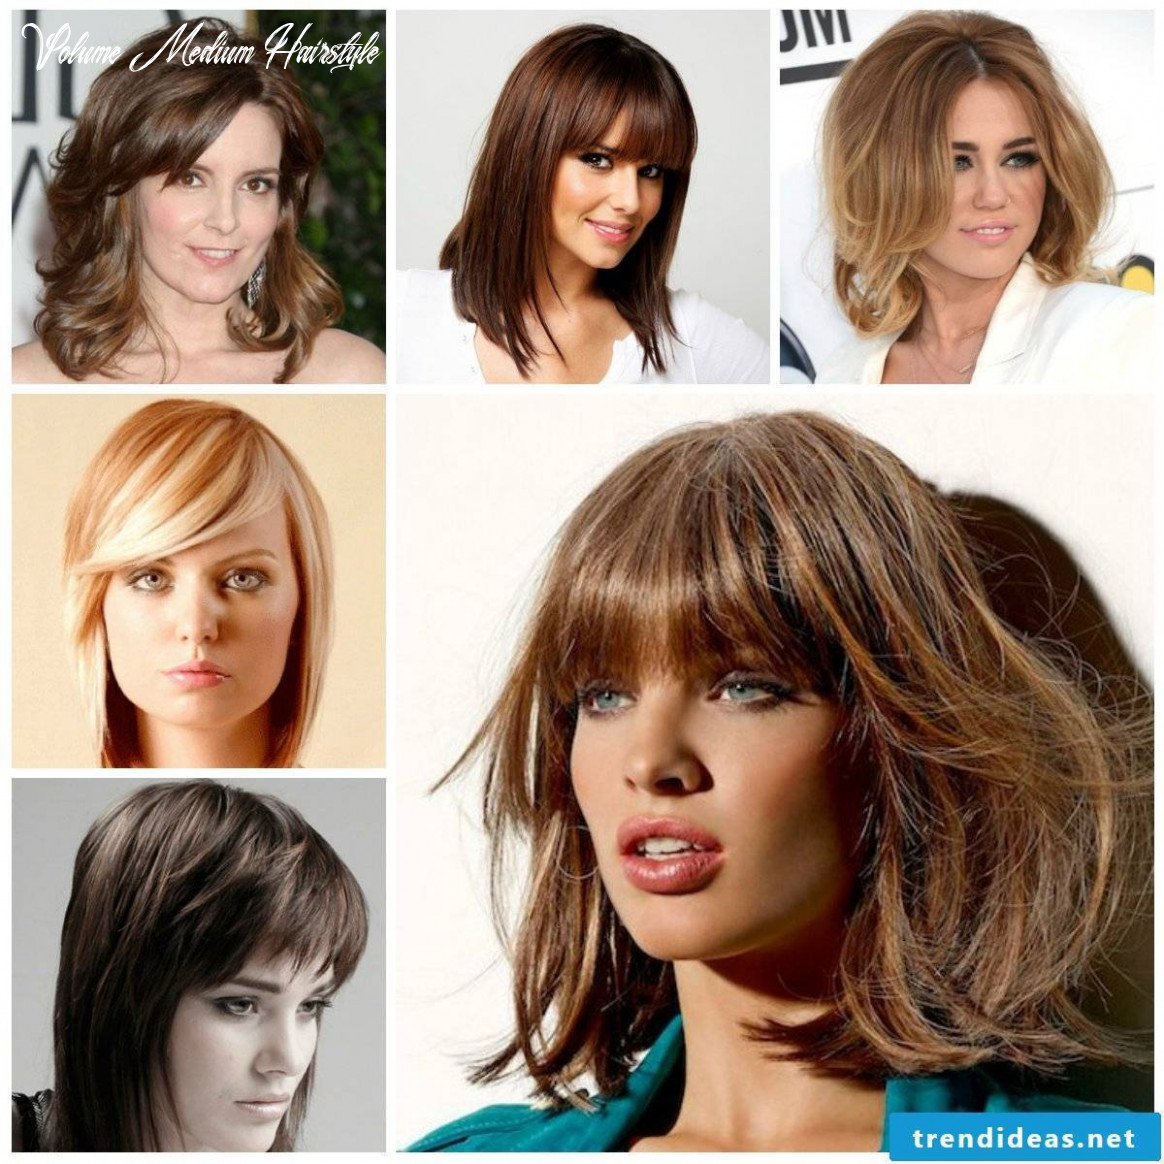 Fabulous hairstyles and latest trends for medium-long hair 12